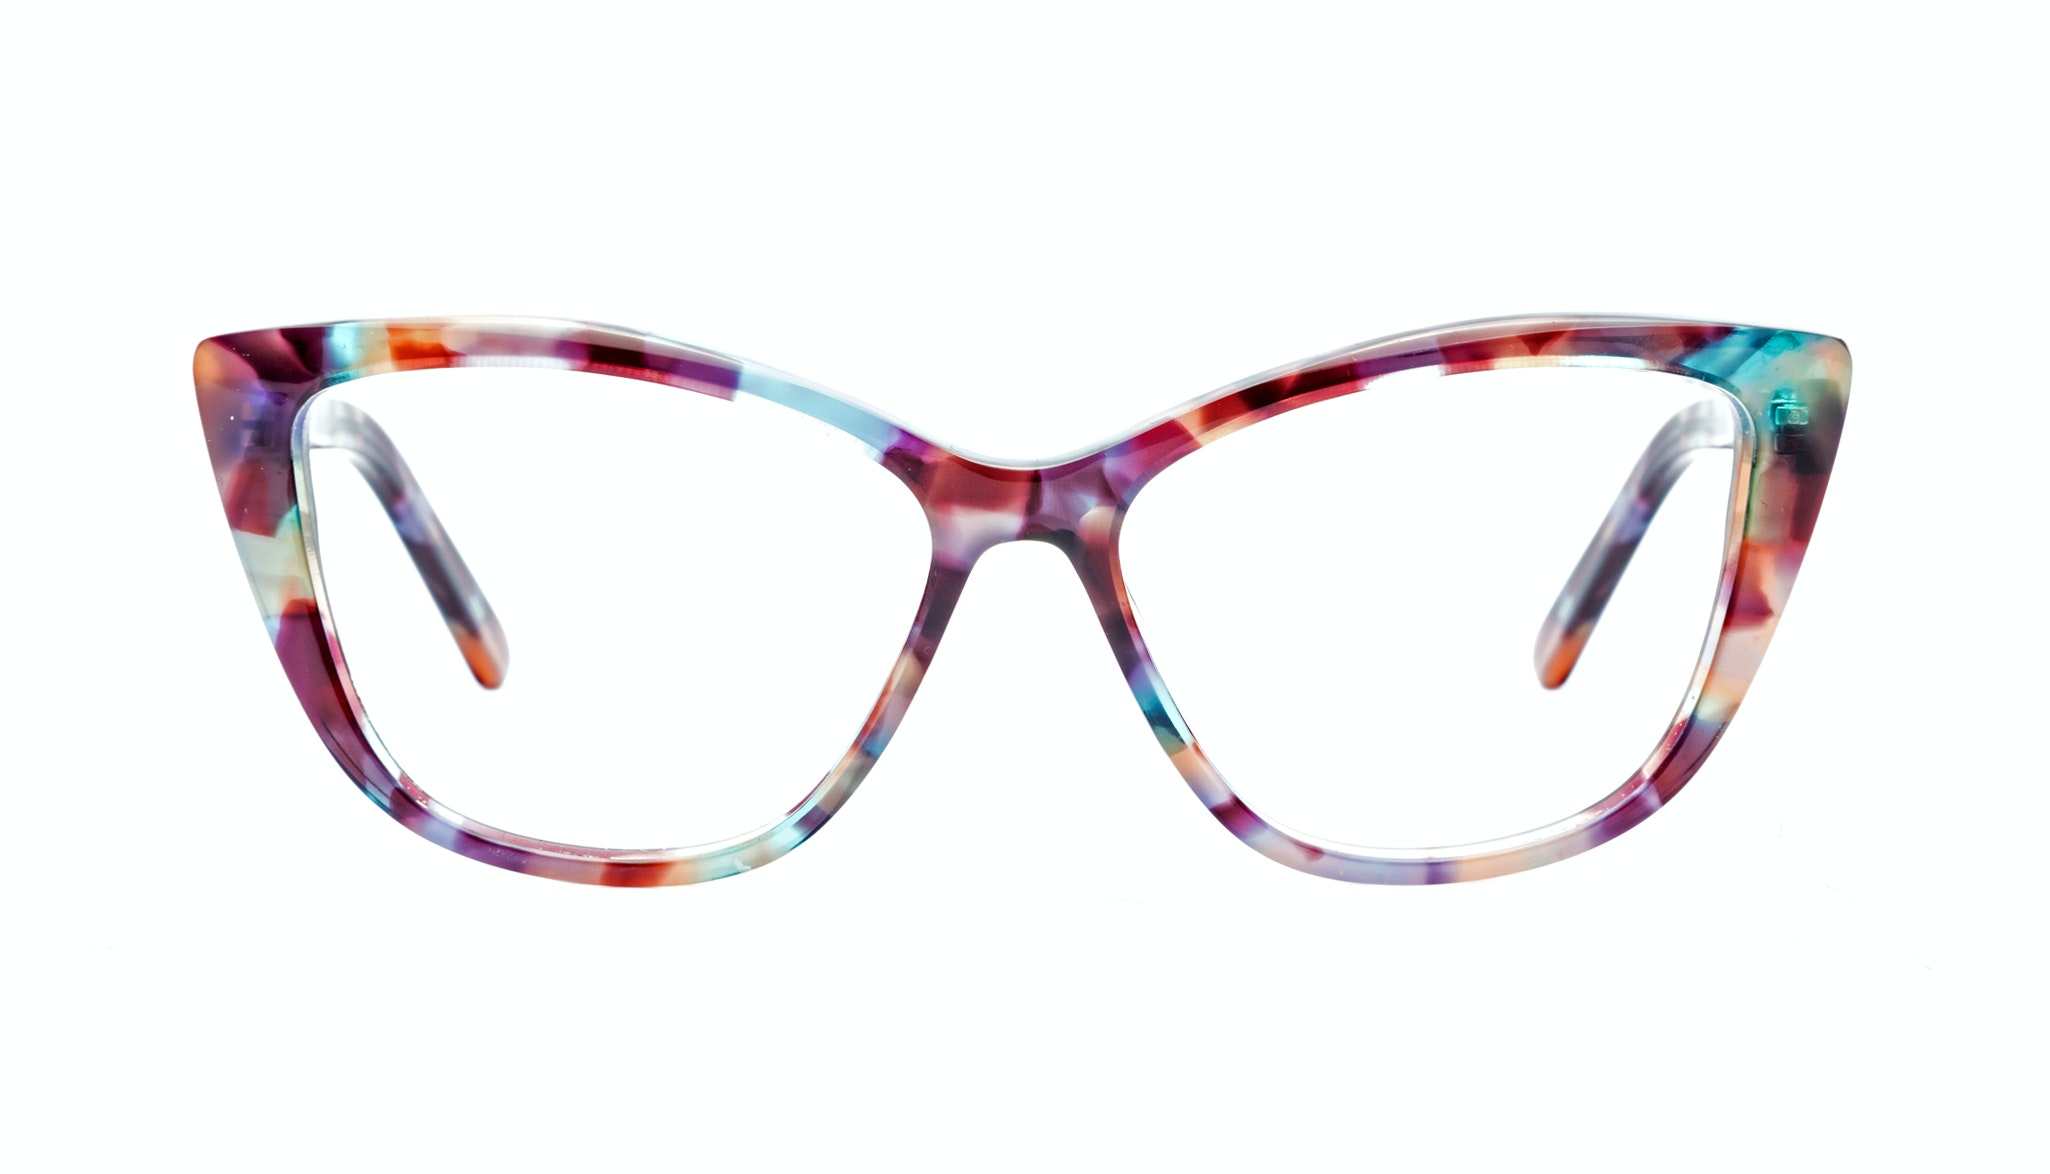 Fashion eyeglasses non prescription 82